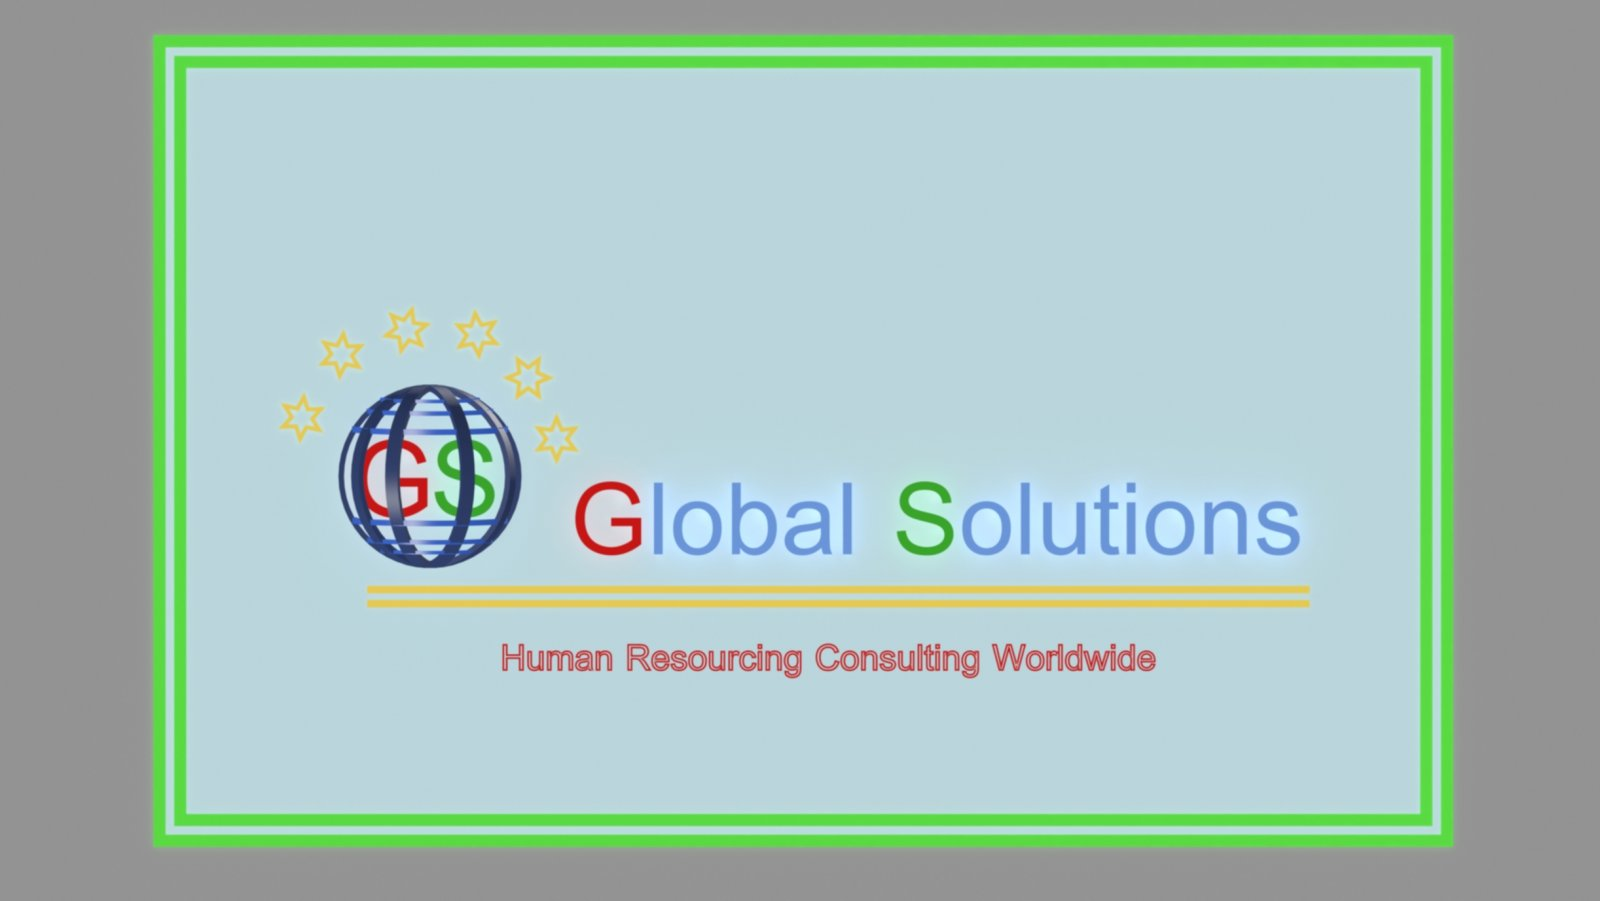 Global Solutions Logo and text.jpg